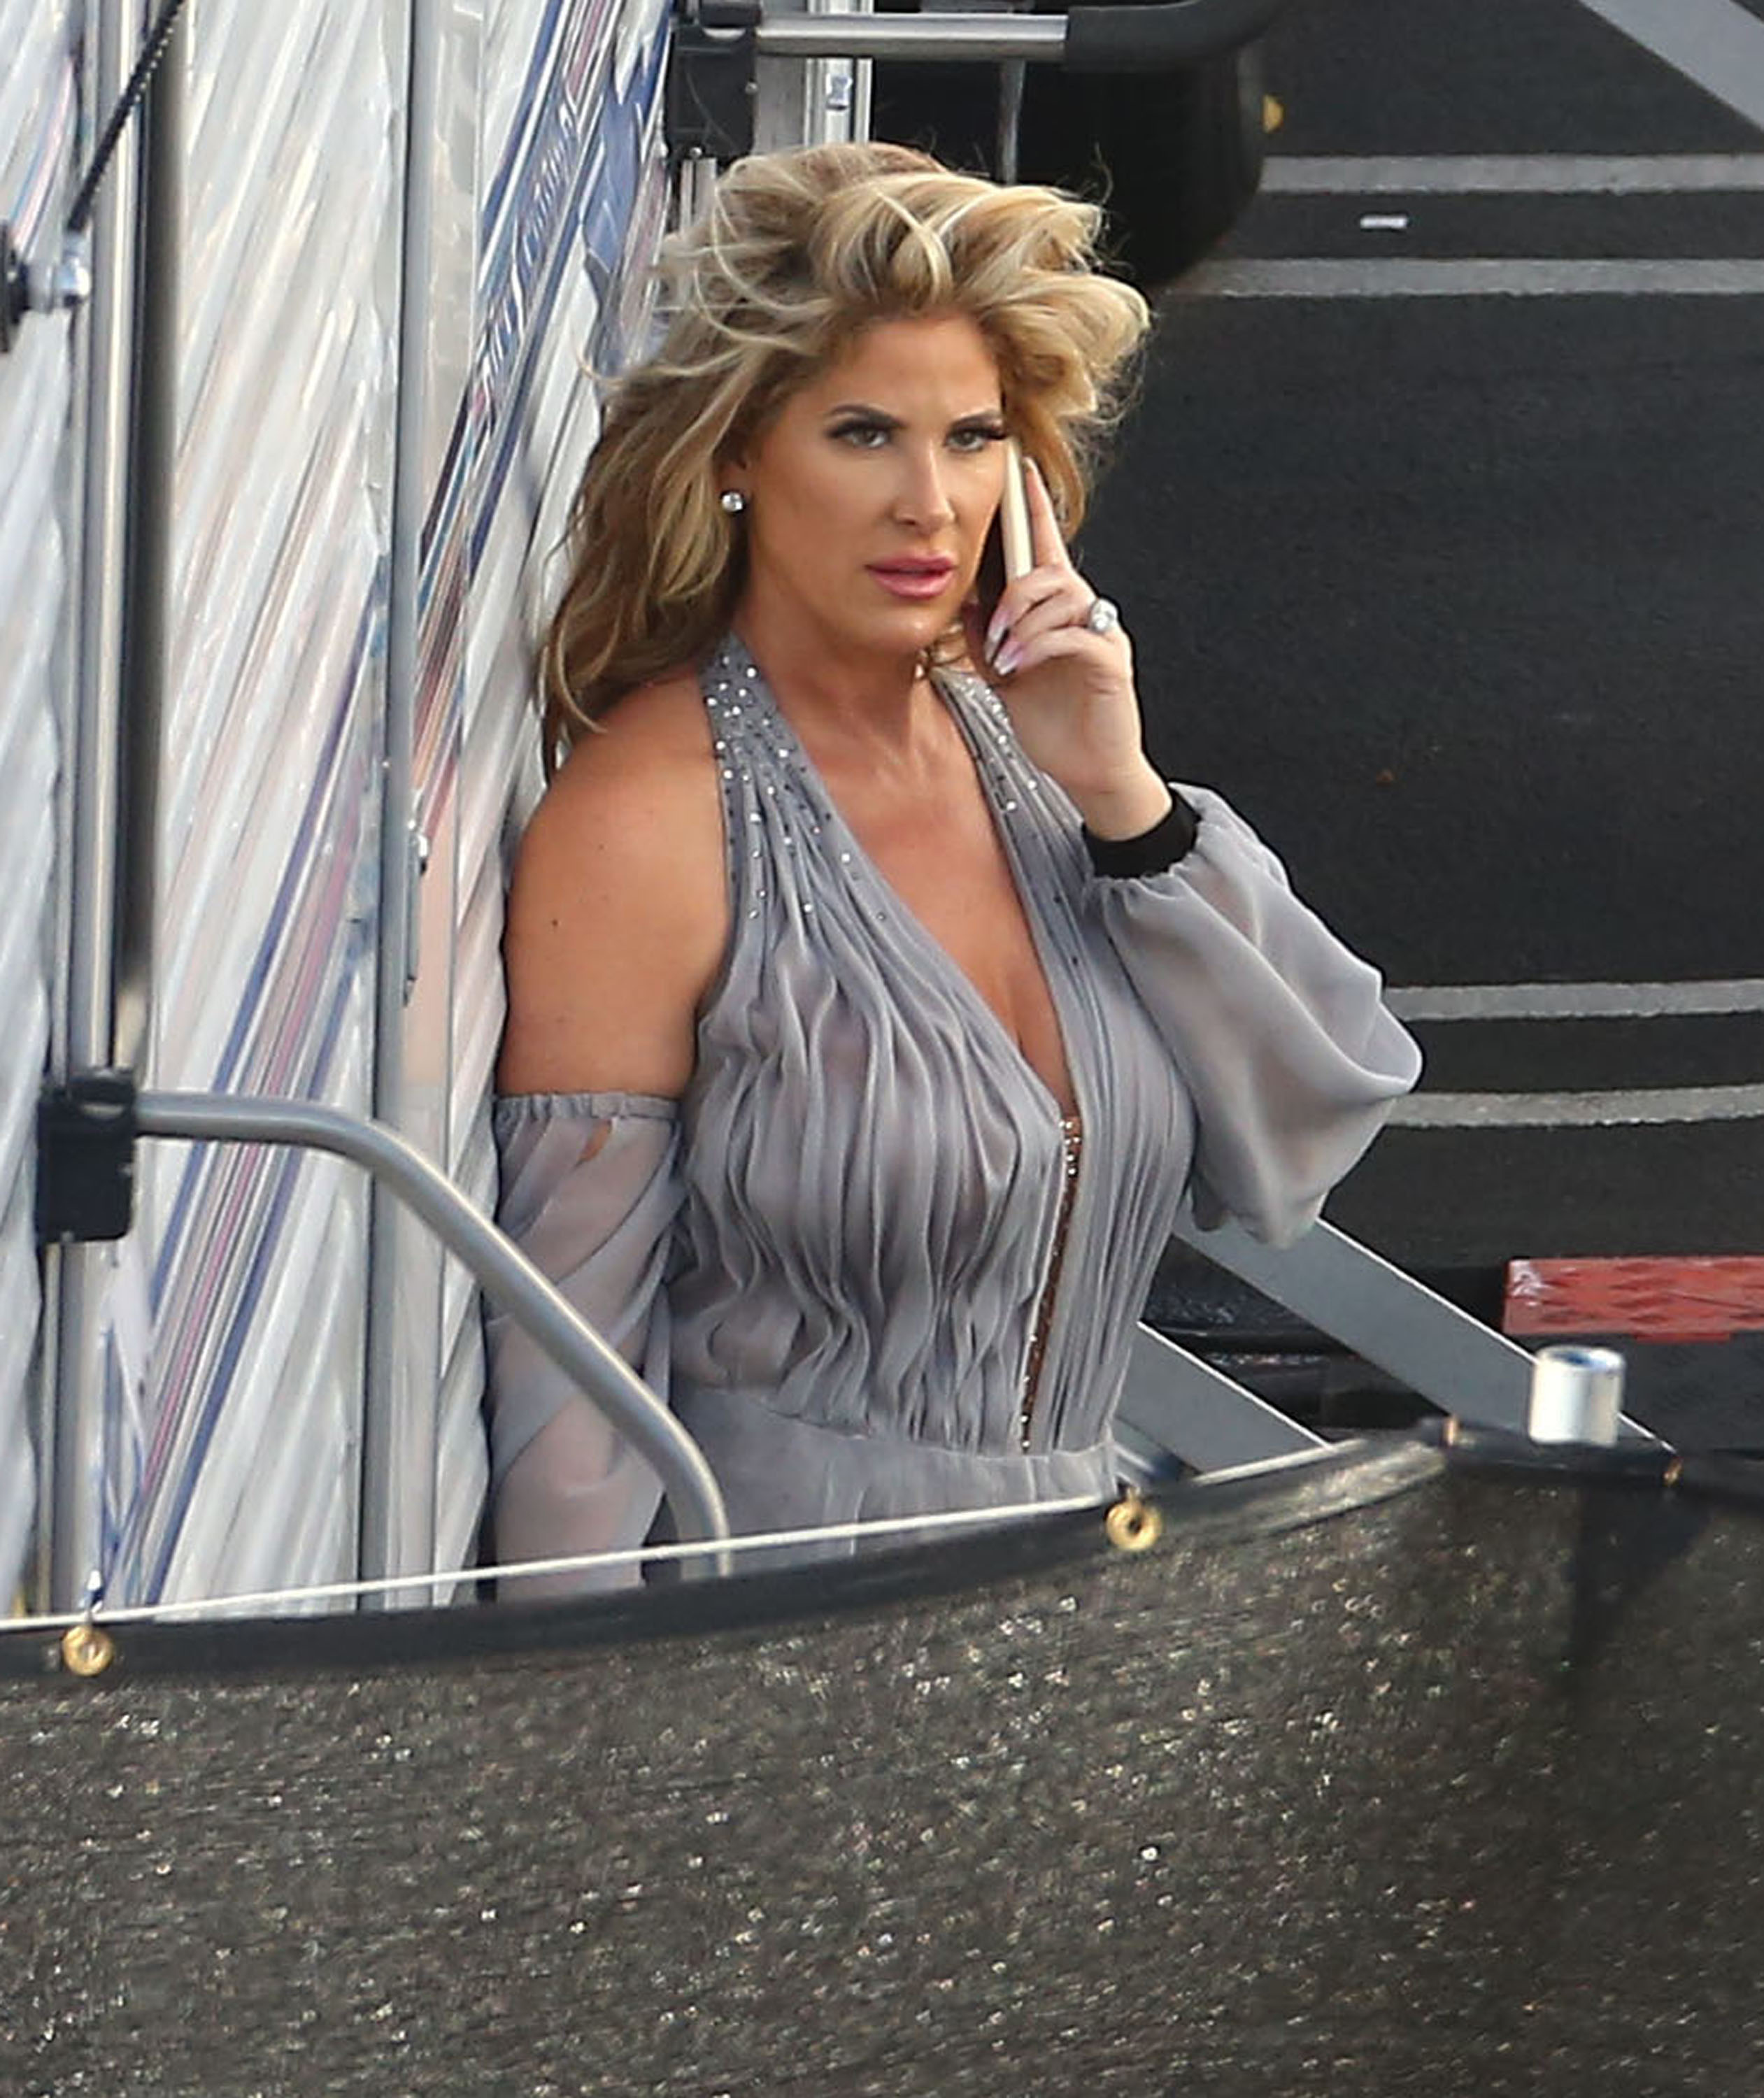 Kim Dancing With The Stars: Eliminated & Furious! The Real Reason Kim Zolciak Was